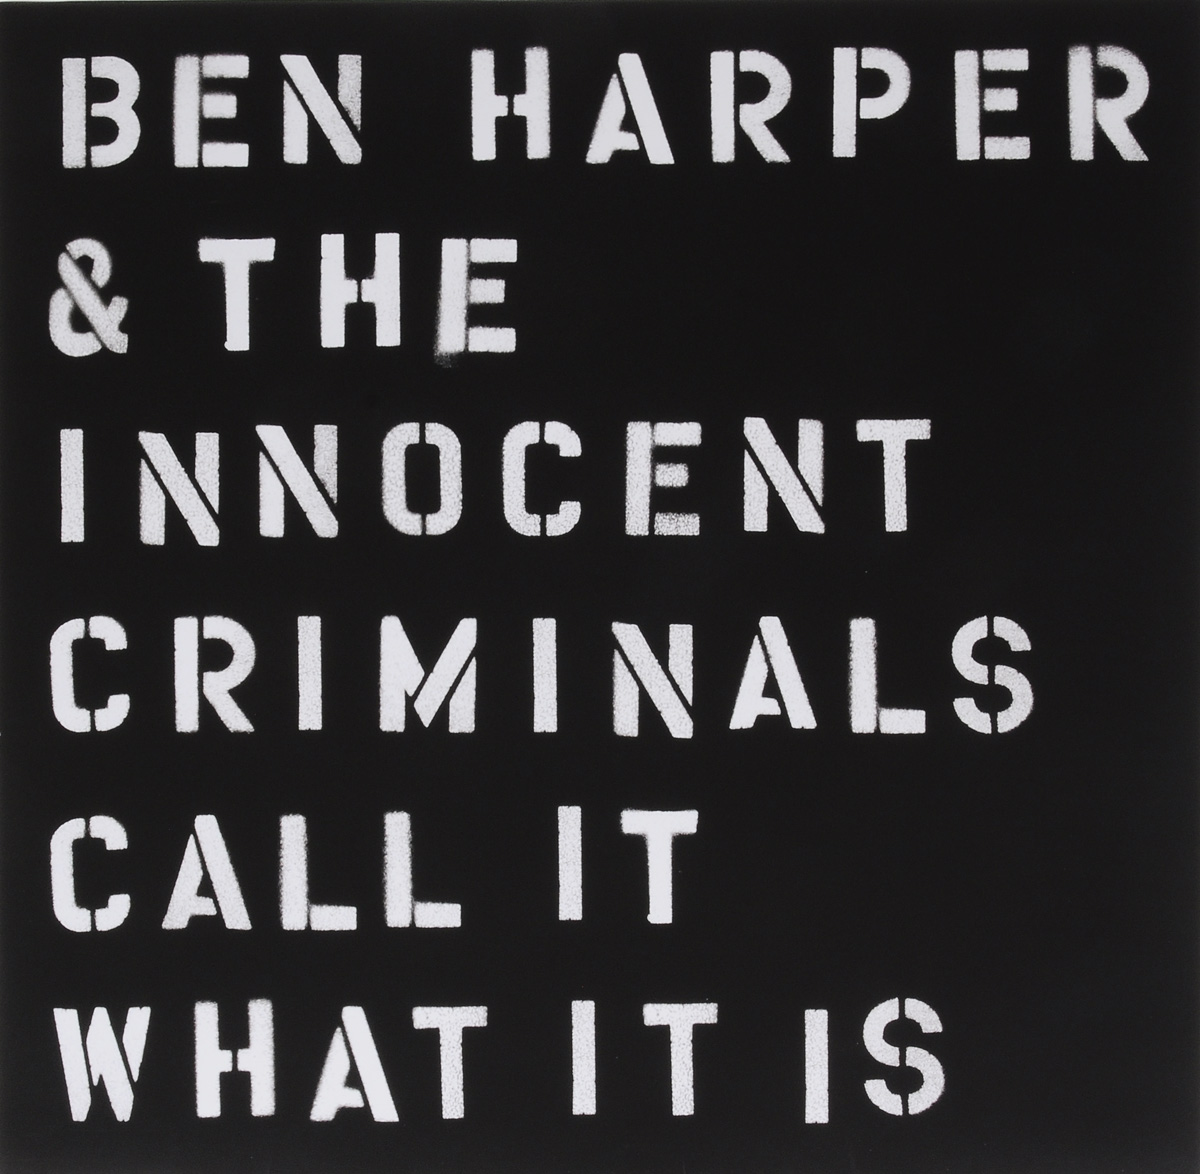 Бен Харпер,The Innocent Criminals Ben Harper & The Innocent Criminals. Call It What It Is (LP) i is for innocent